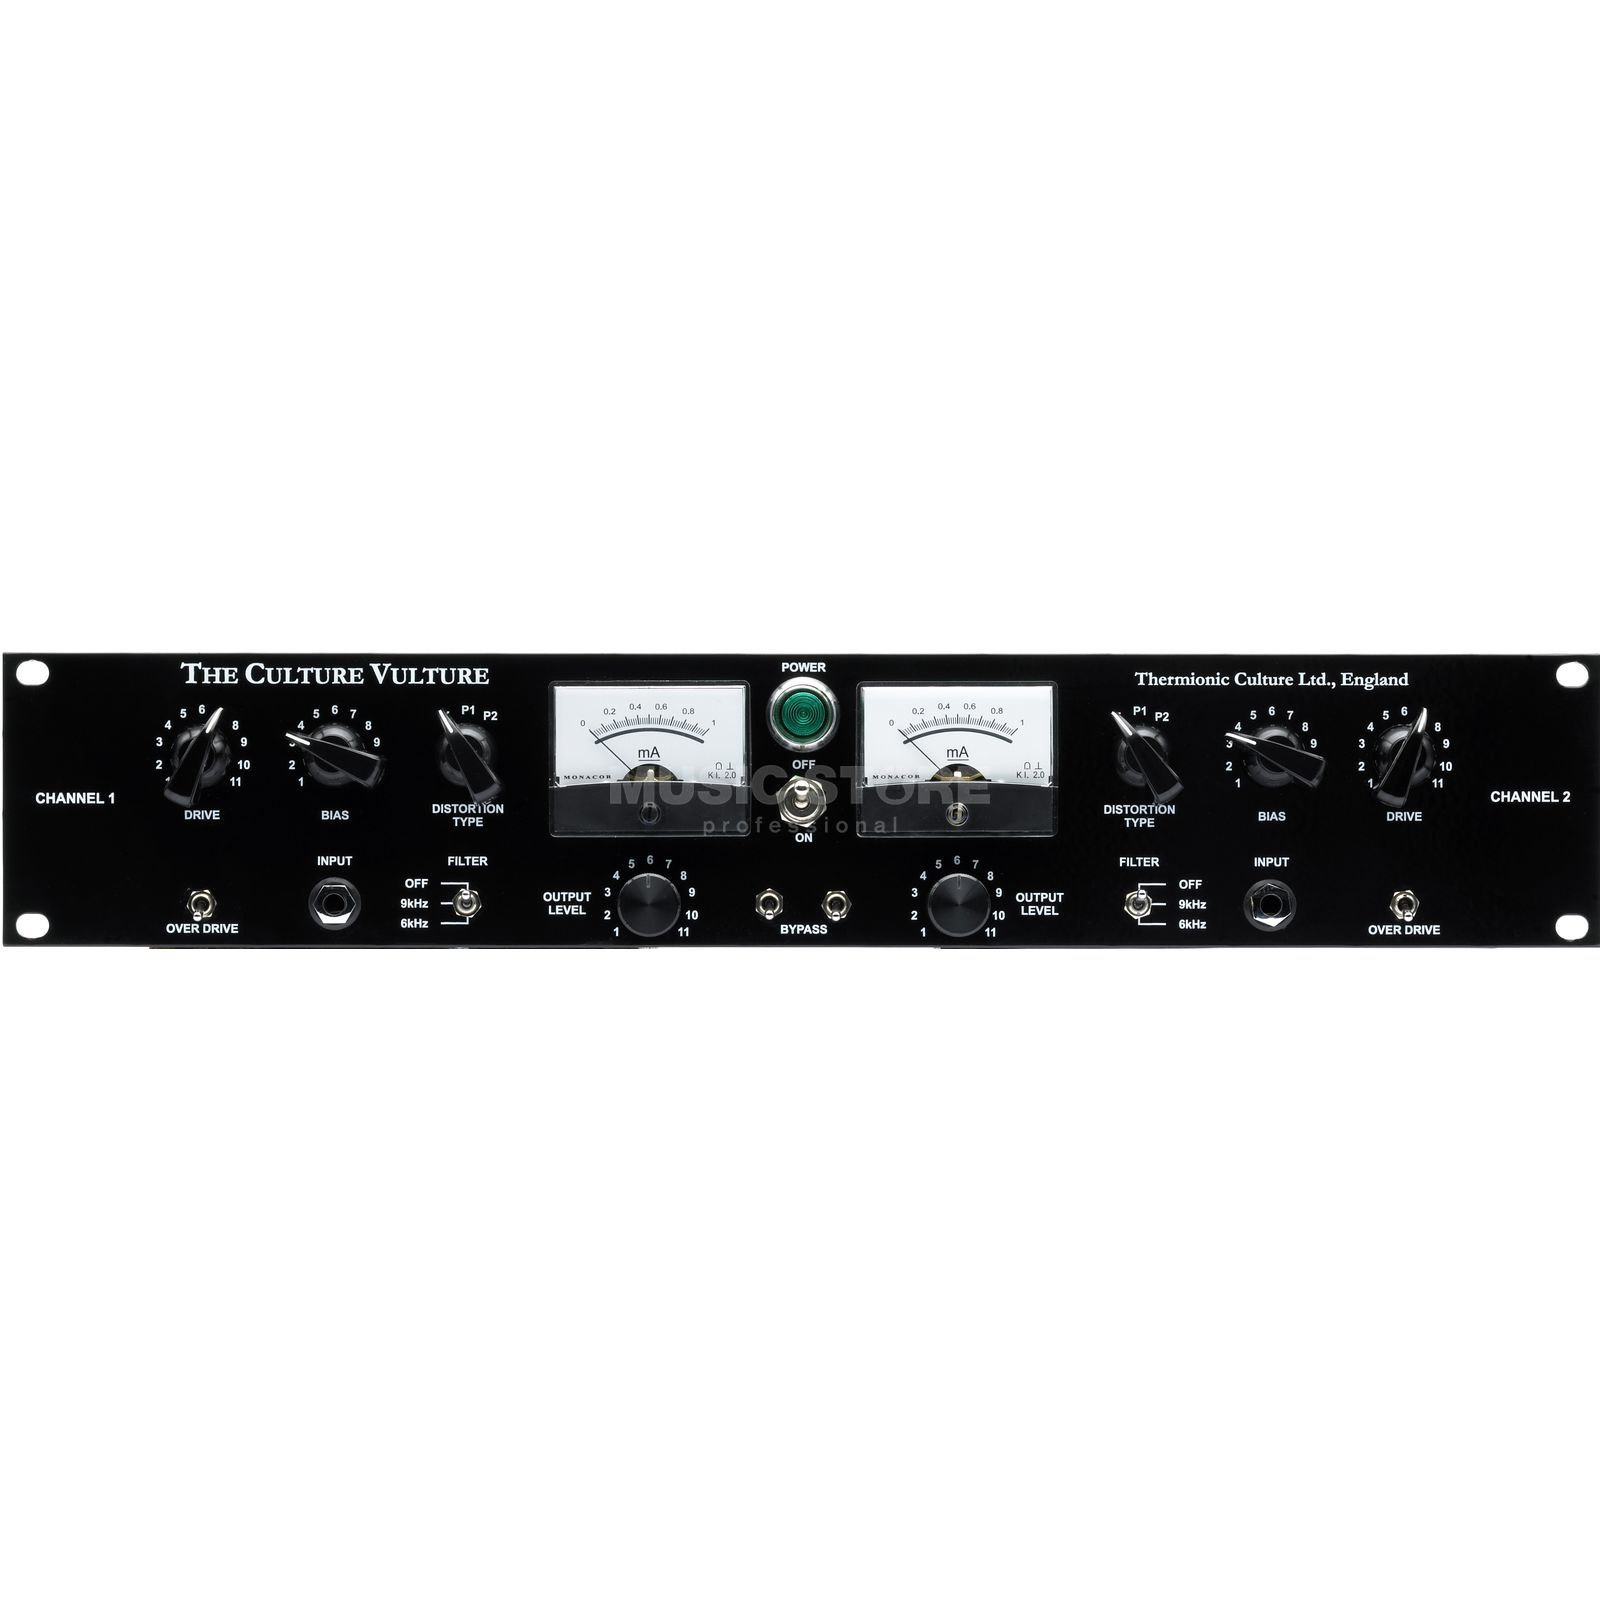 Thermionic Culture The Culture Vulture Stereo Valve Distortion Unit Product Image